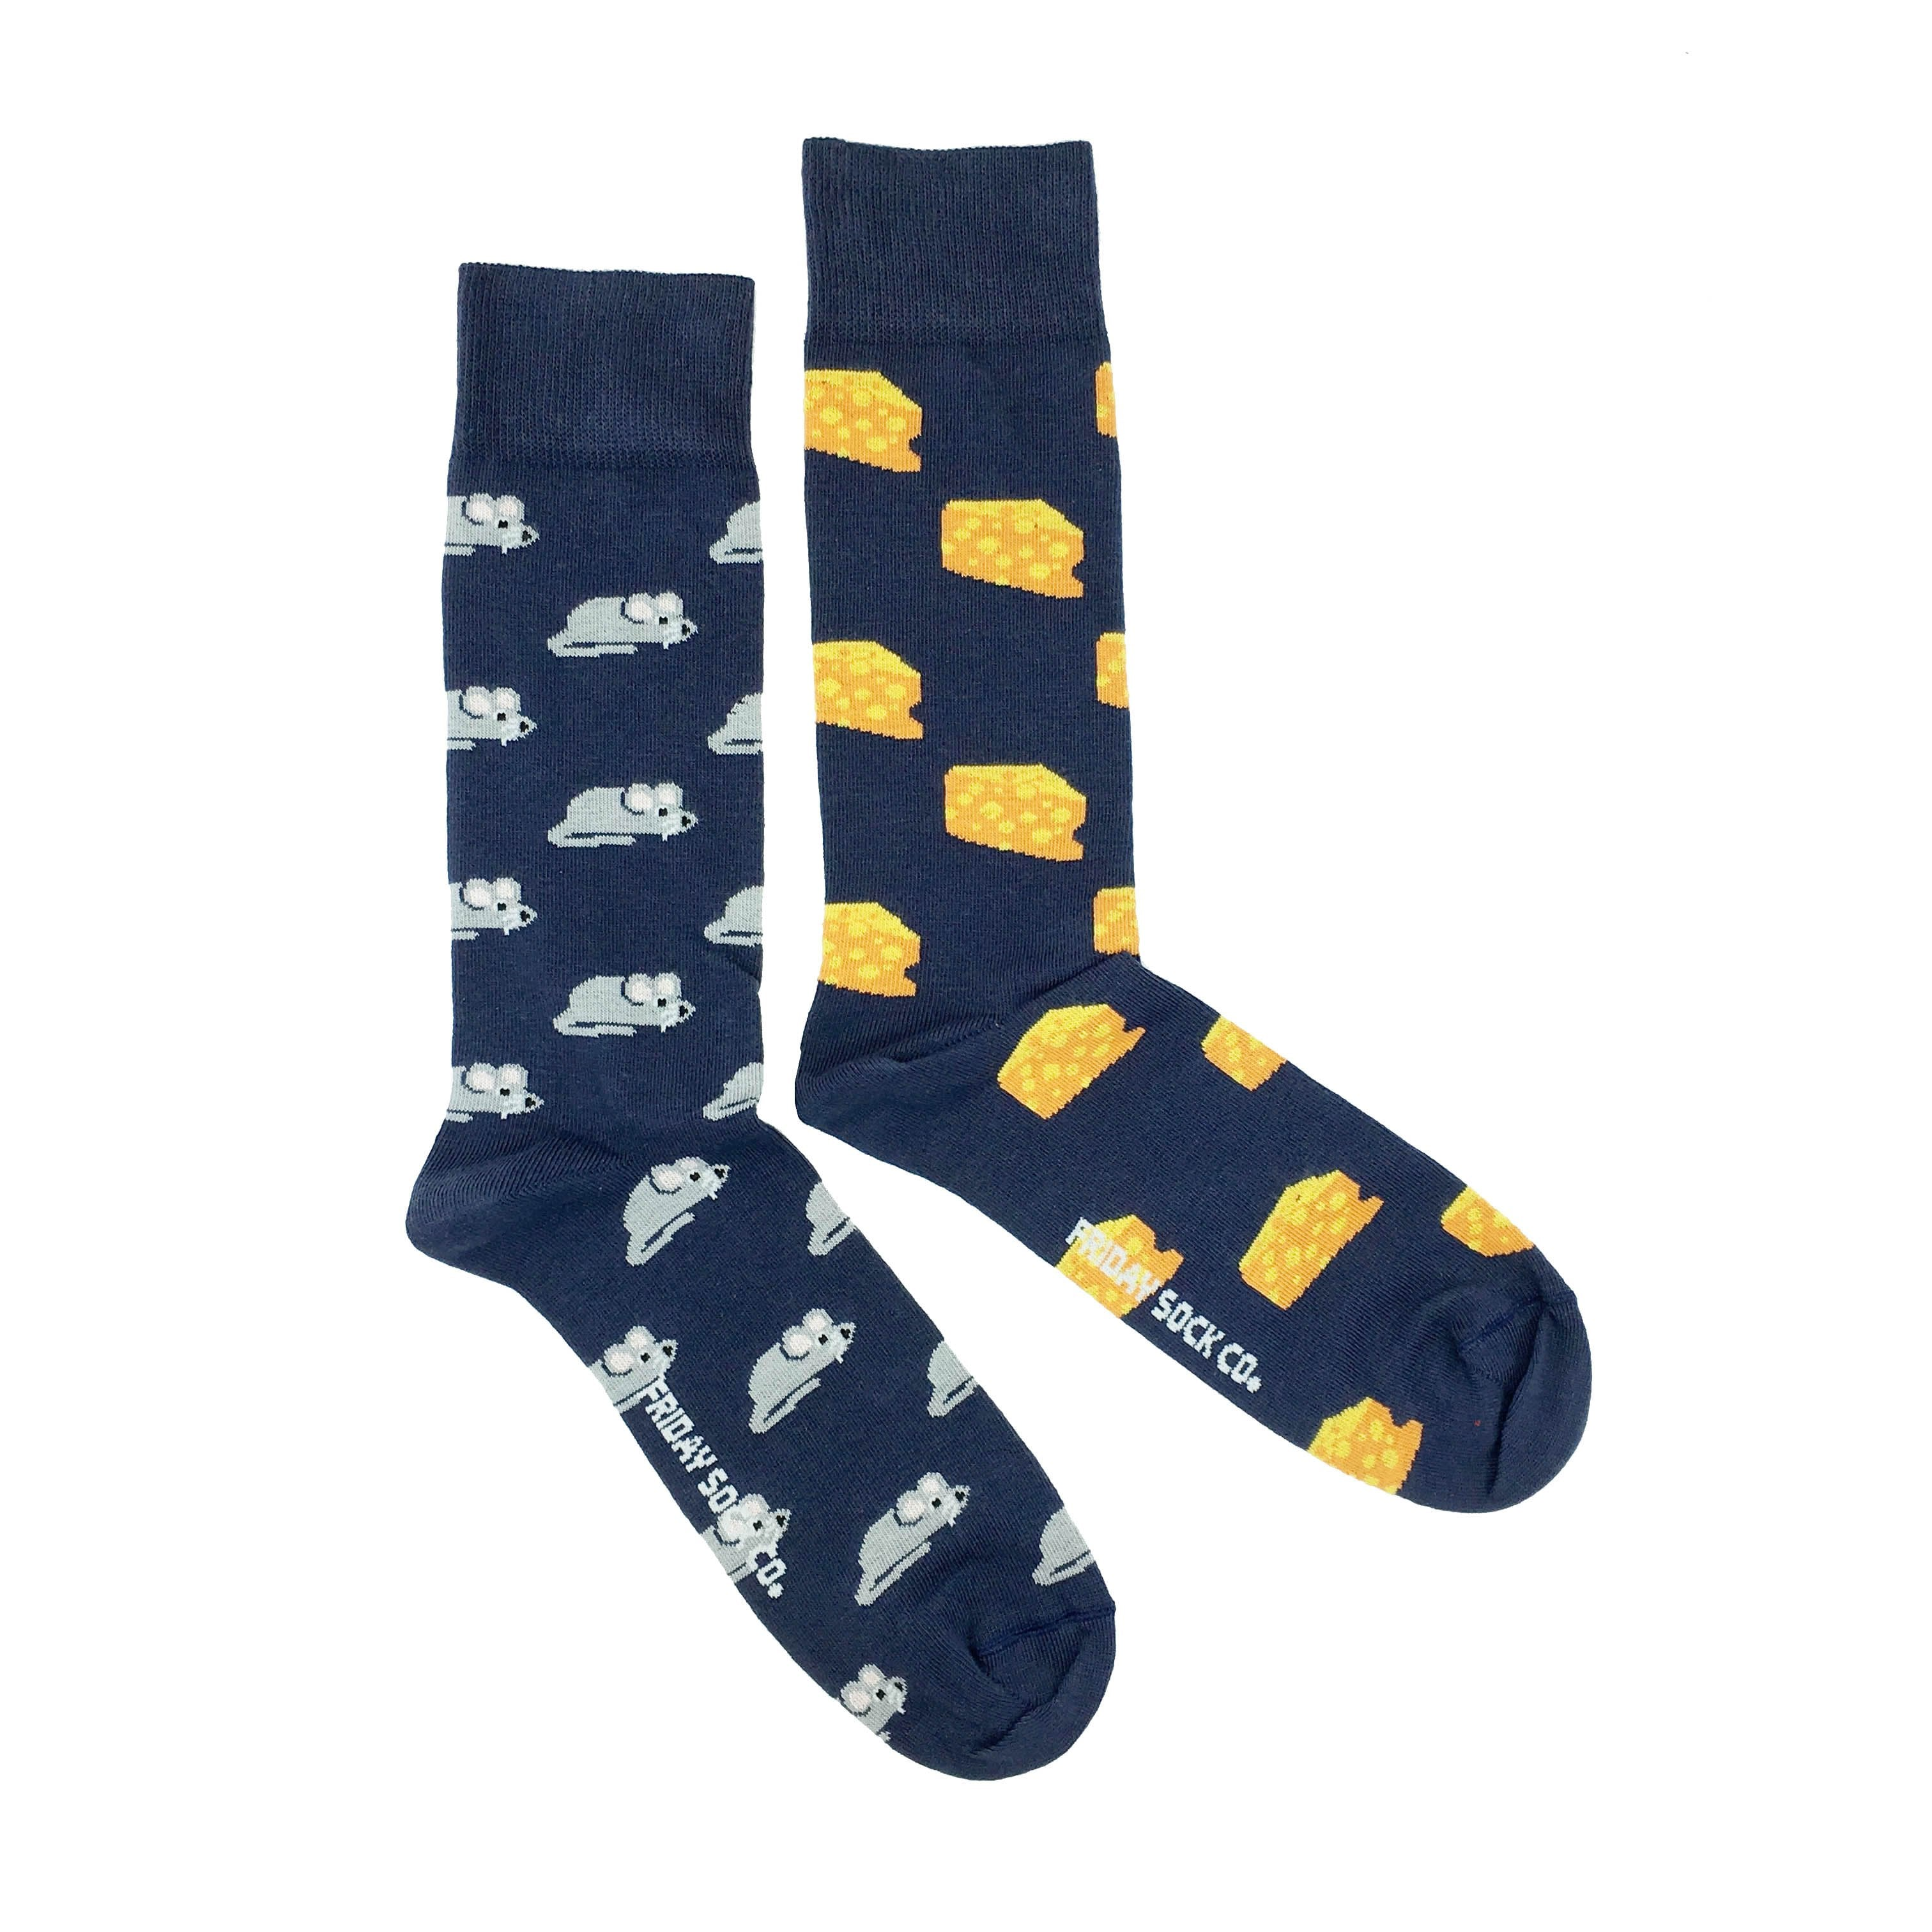 Friday Sock Co. -  Men's Mouse & Cheese